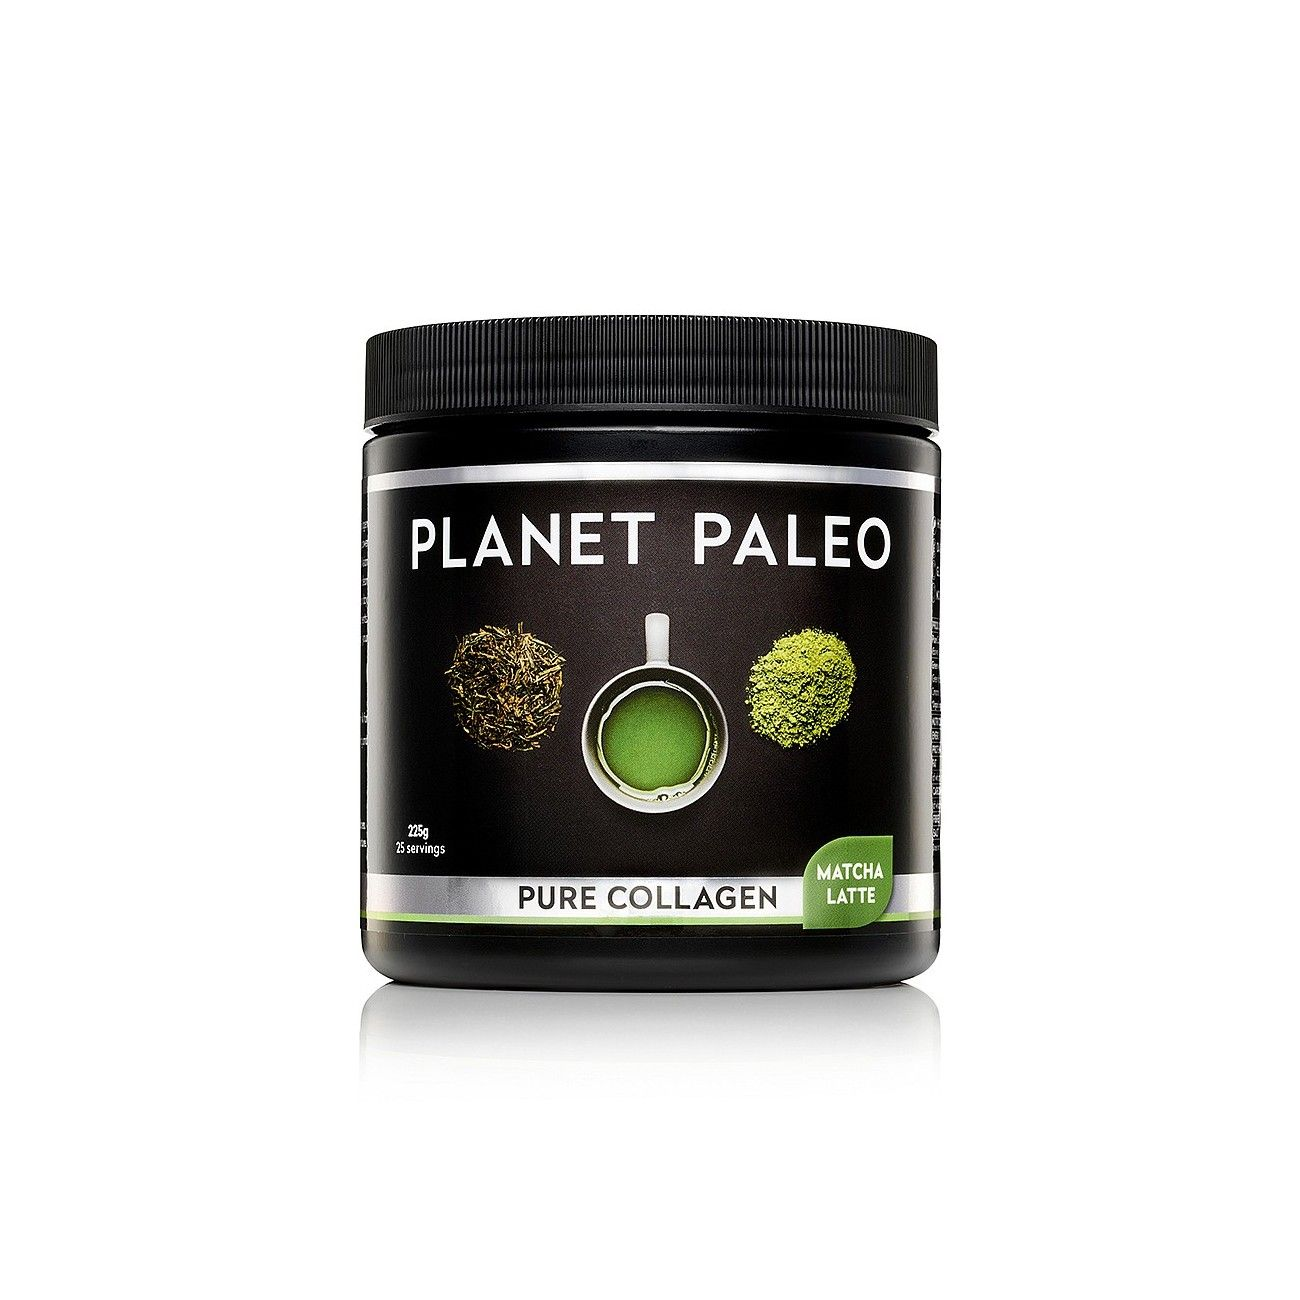 PLANET PALEO PURE COLLAGEN MATCHA LATTE